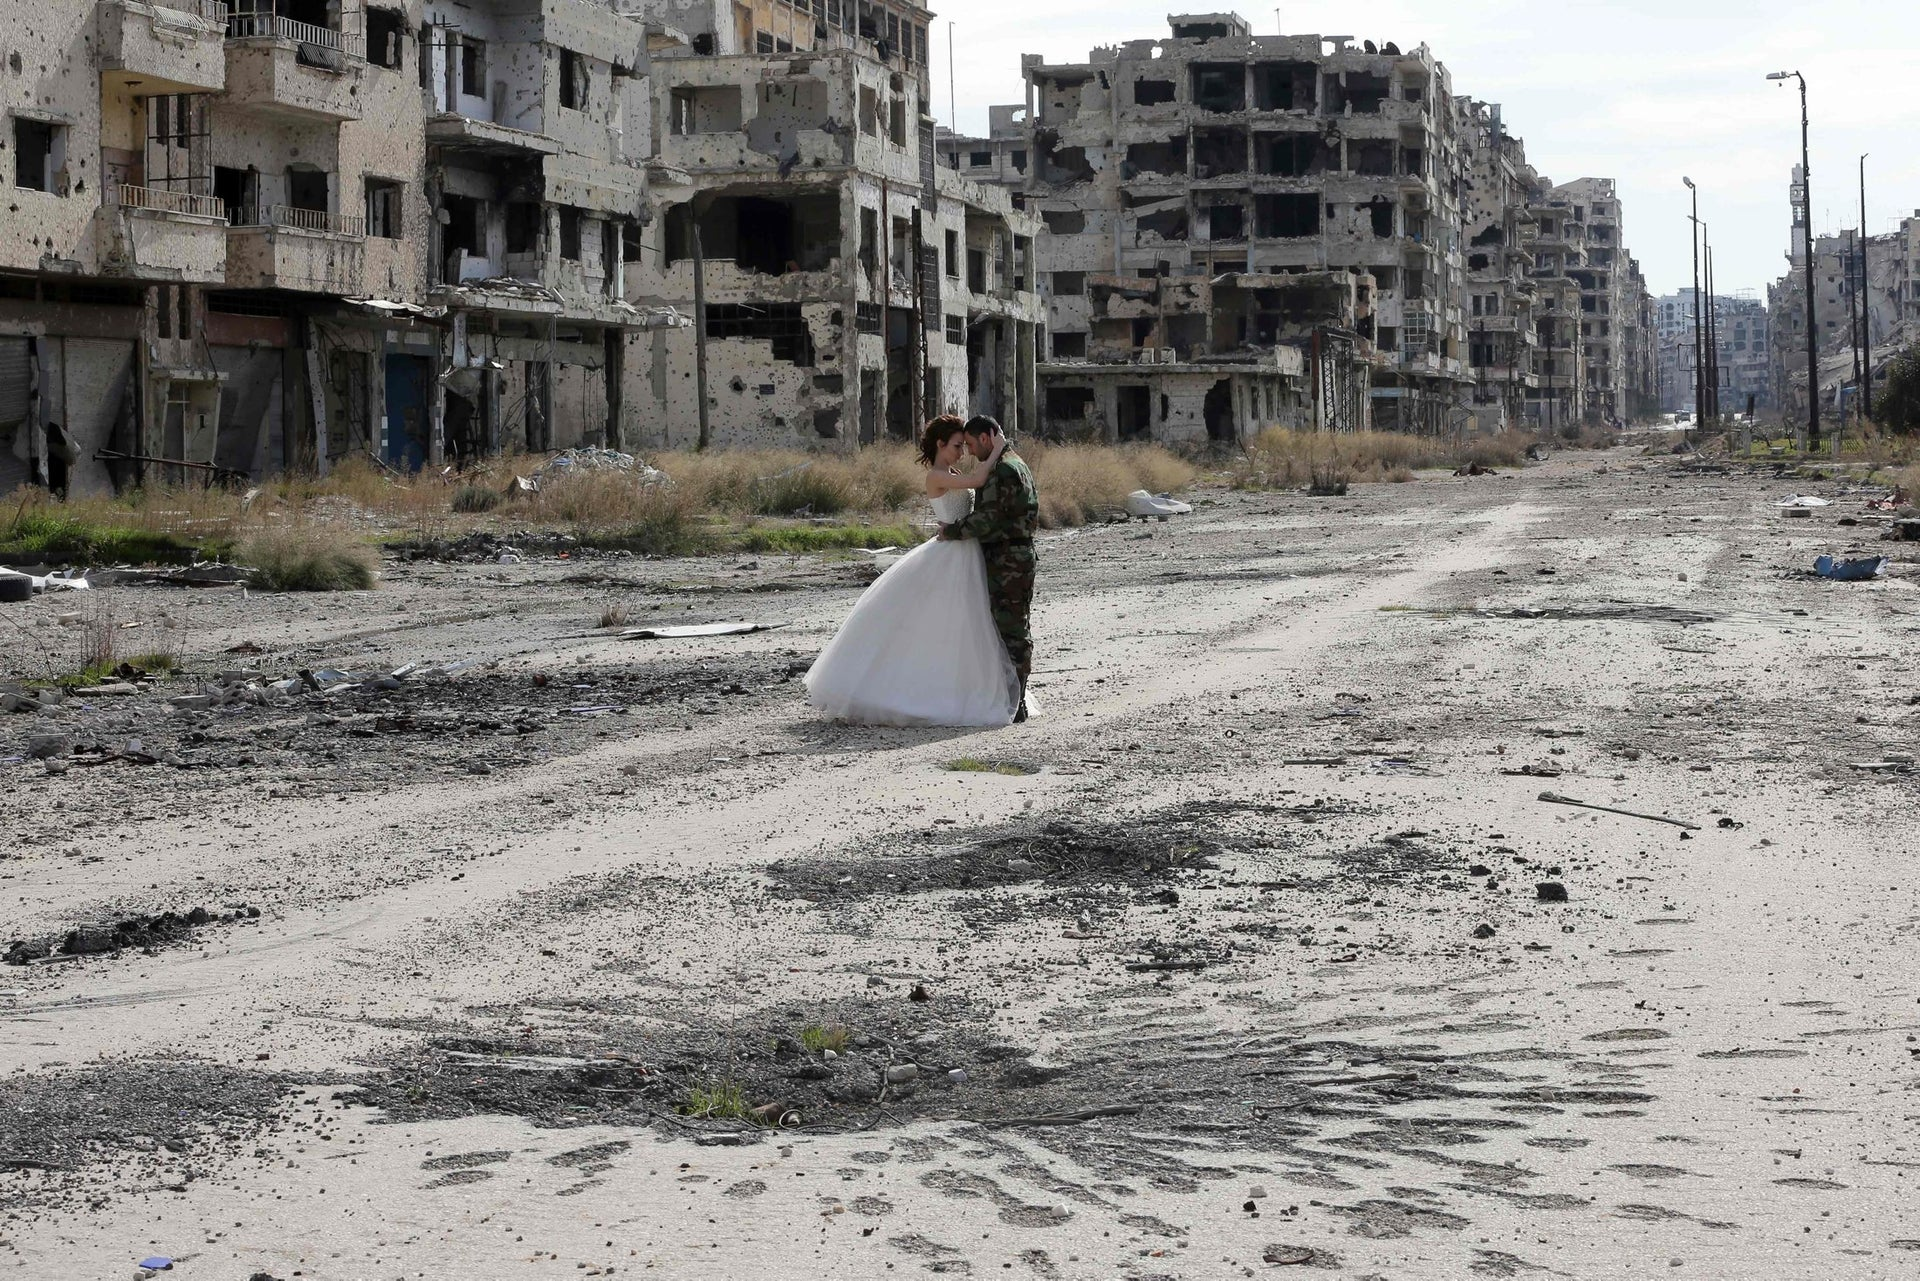 Shelled buildings in Homs, Syria, serve as the unlikely backdrop for the wedding photos of Nada Merhi and Hassan Youssef on February 5, 2016.